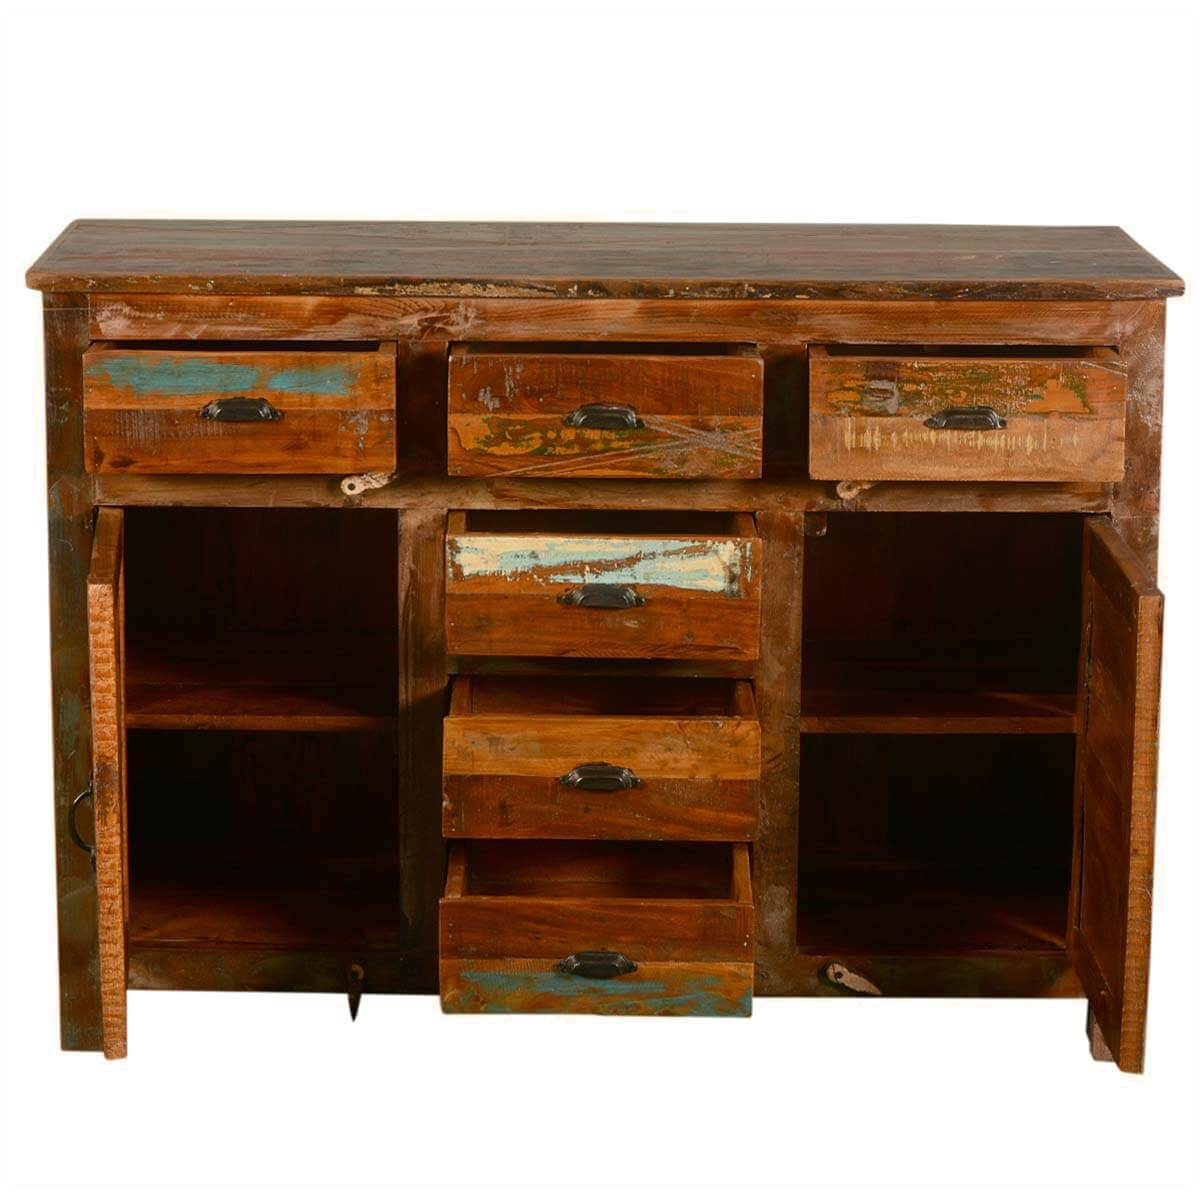 Pedro Rustic Reclaimed Wood 6 Drawer Sideboard